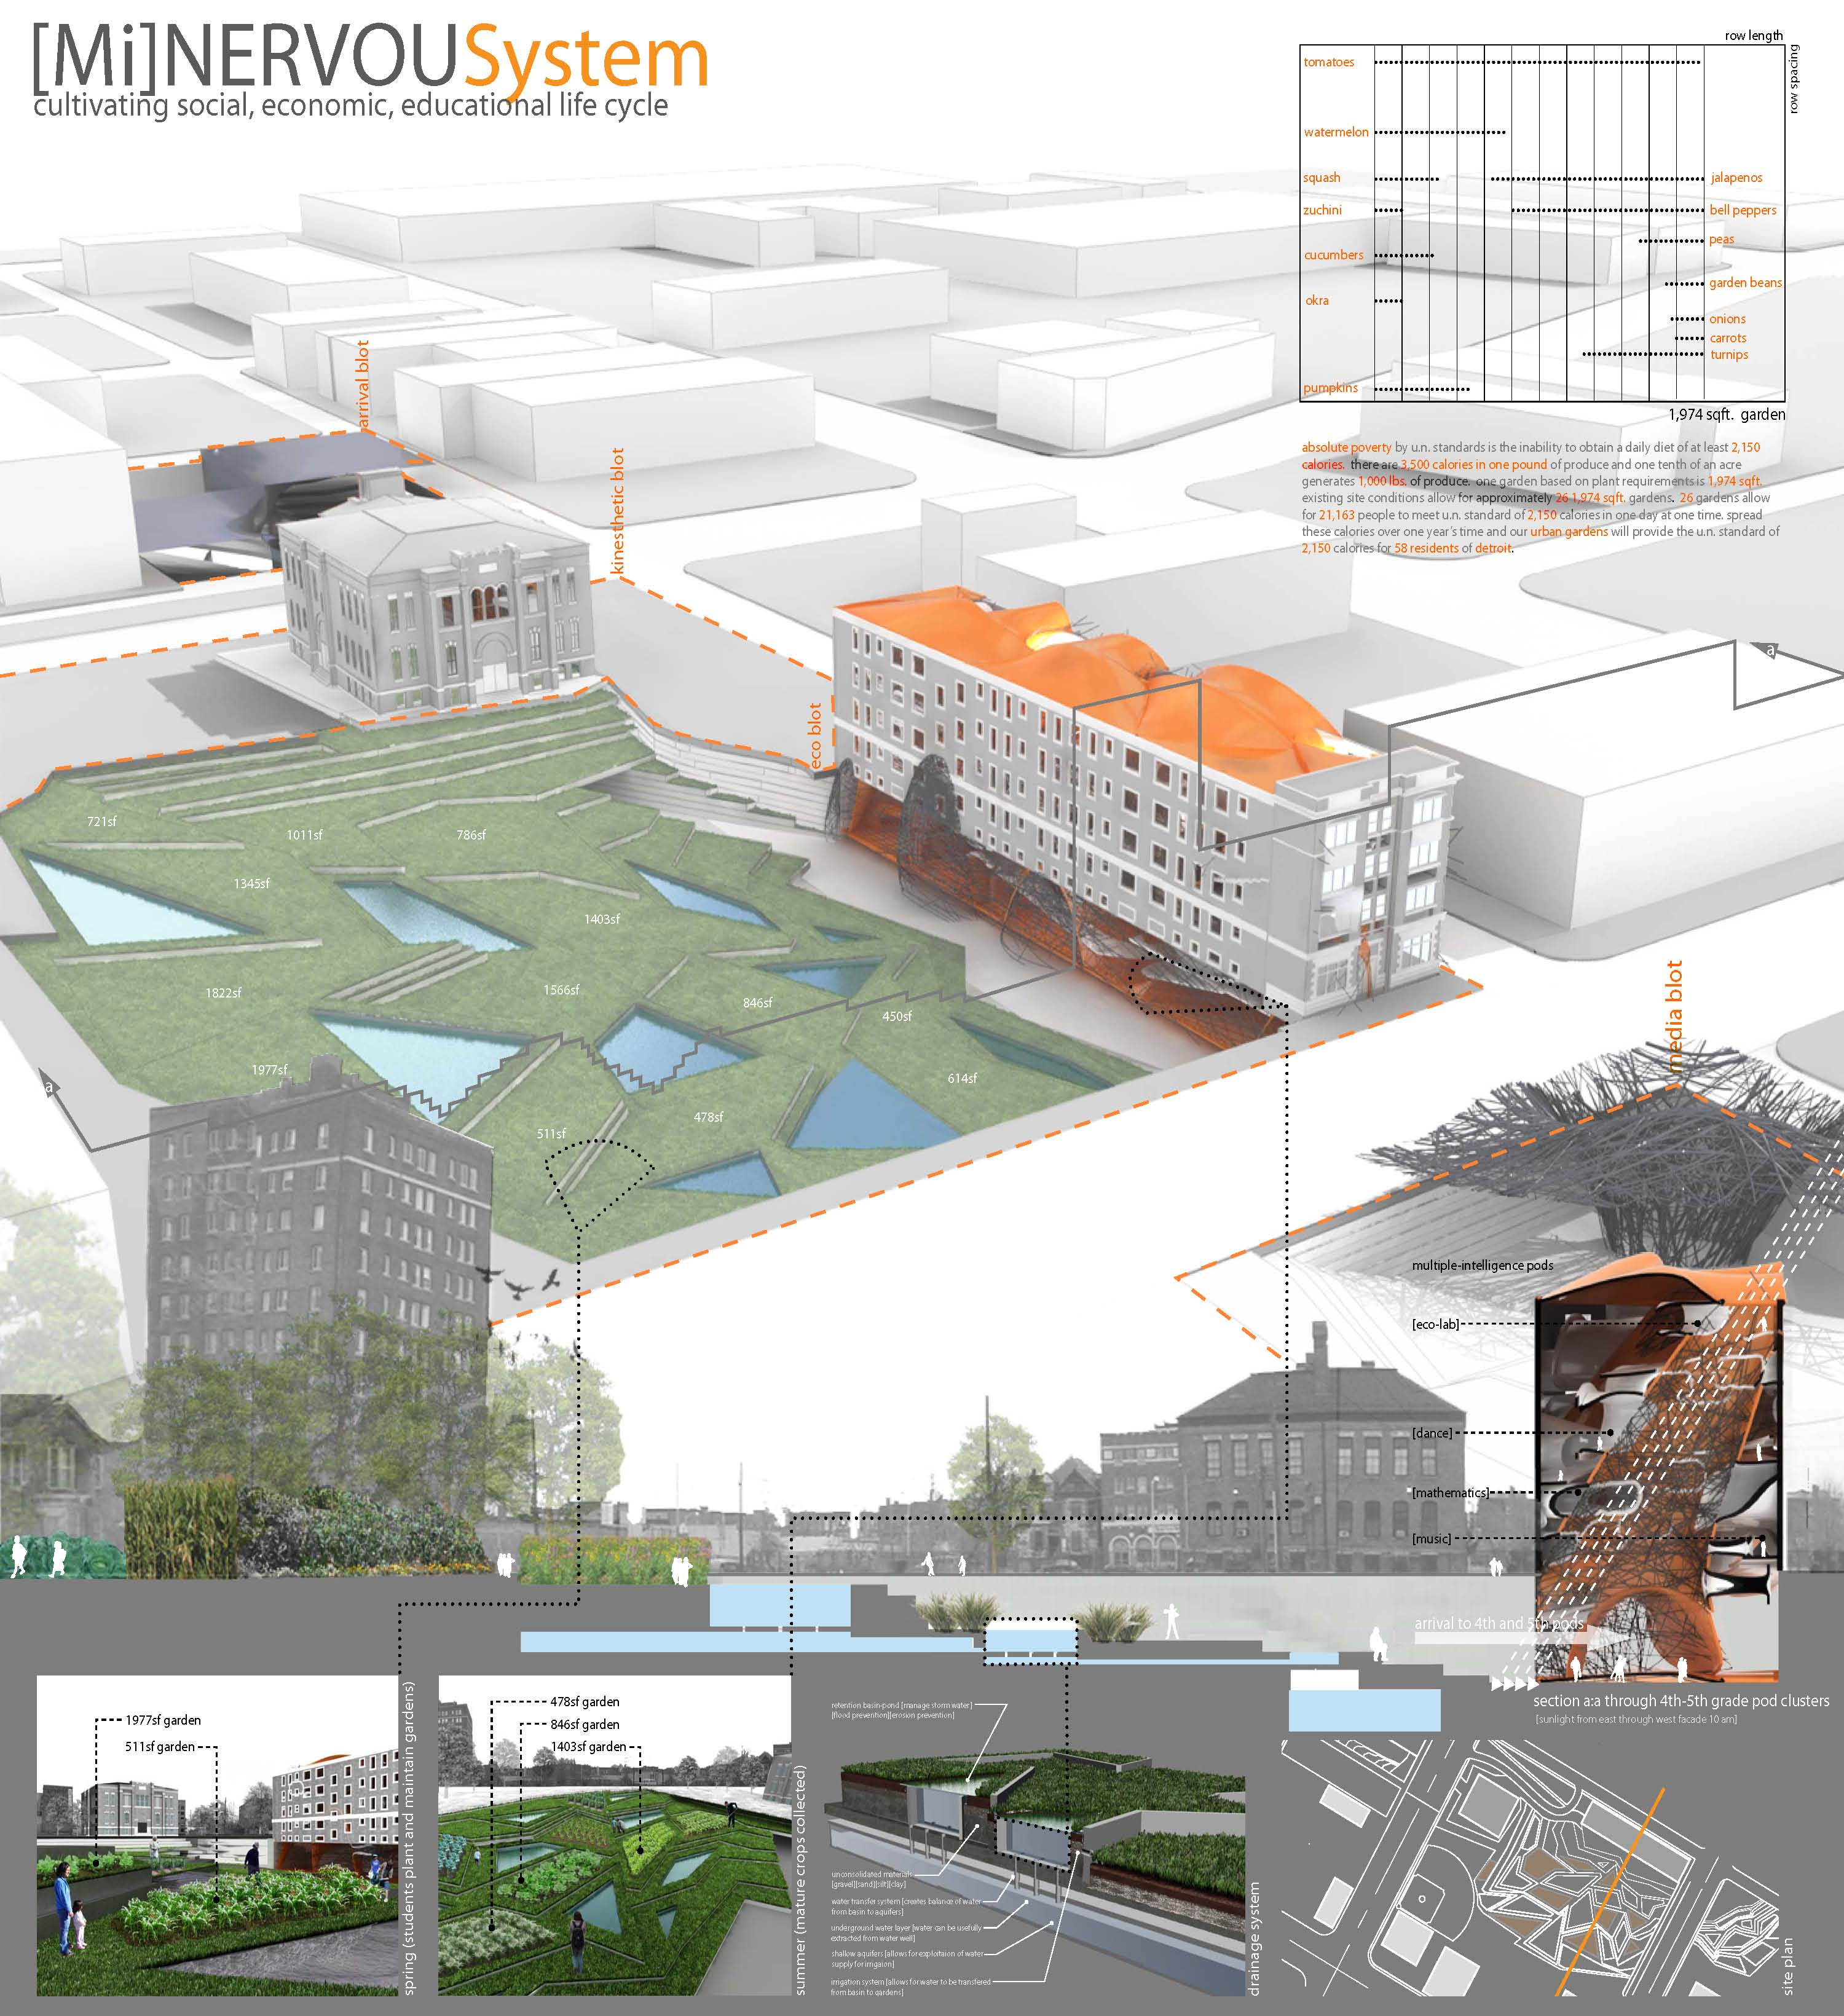 02_final-proposed-site